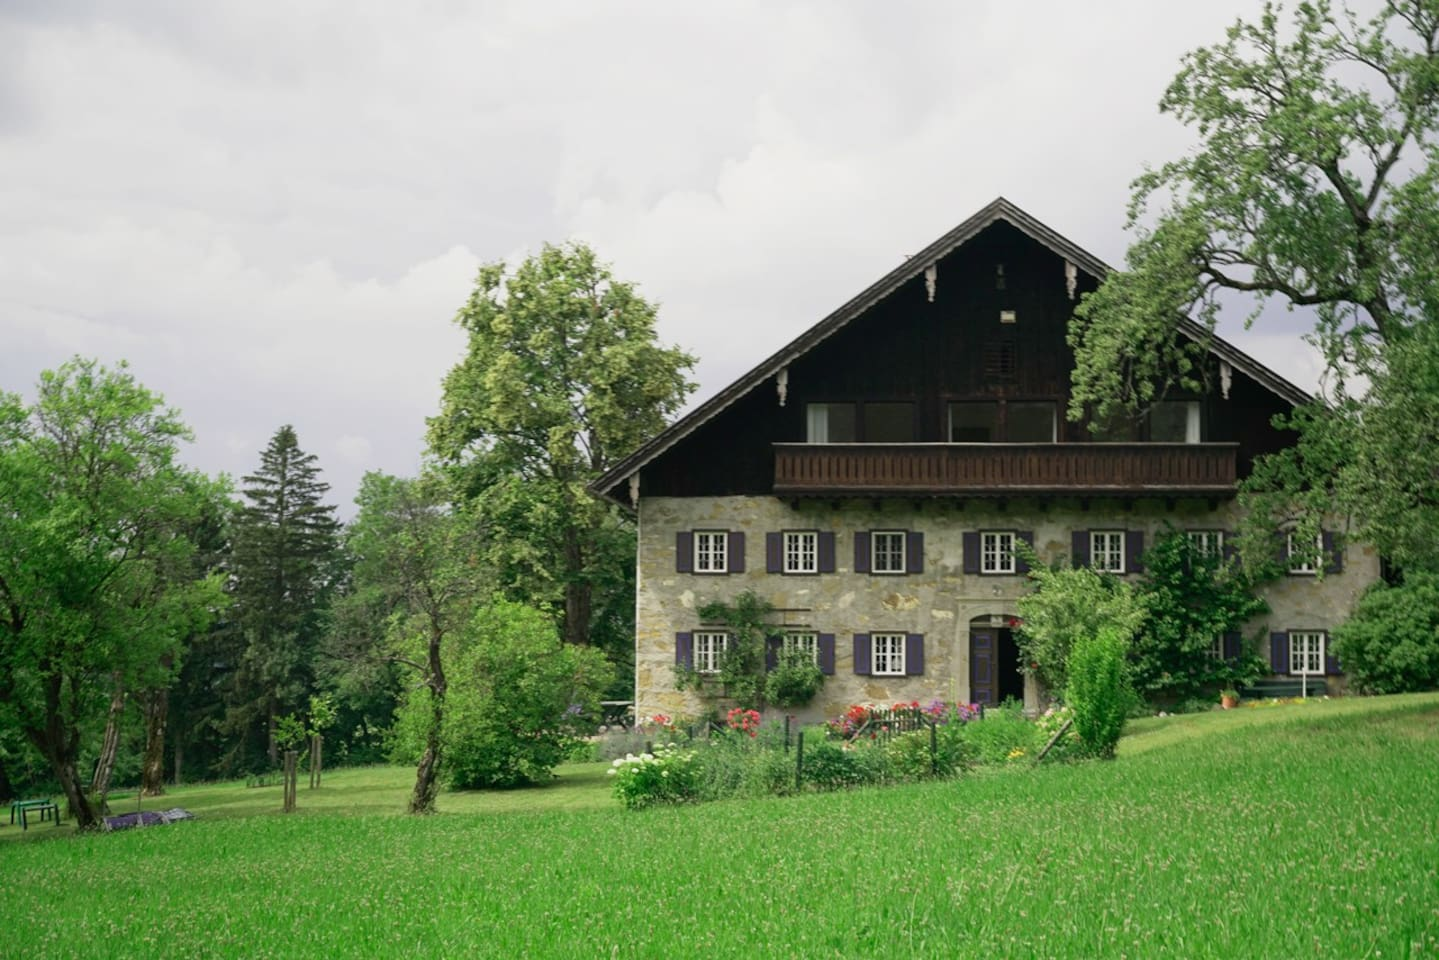 Magnificent Country House - An Oasis in Salzkammergut, a Magical Musical Part of Austria